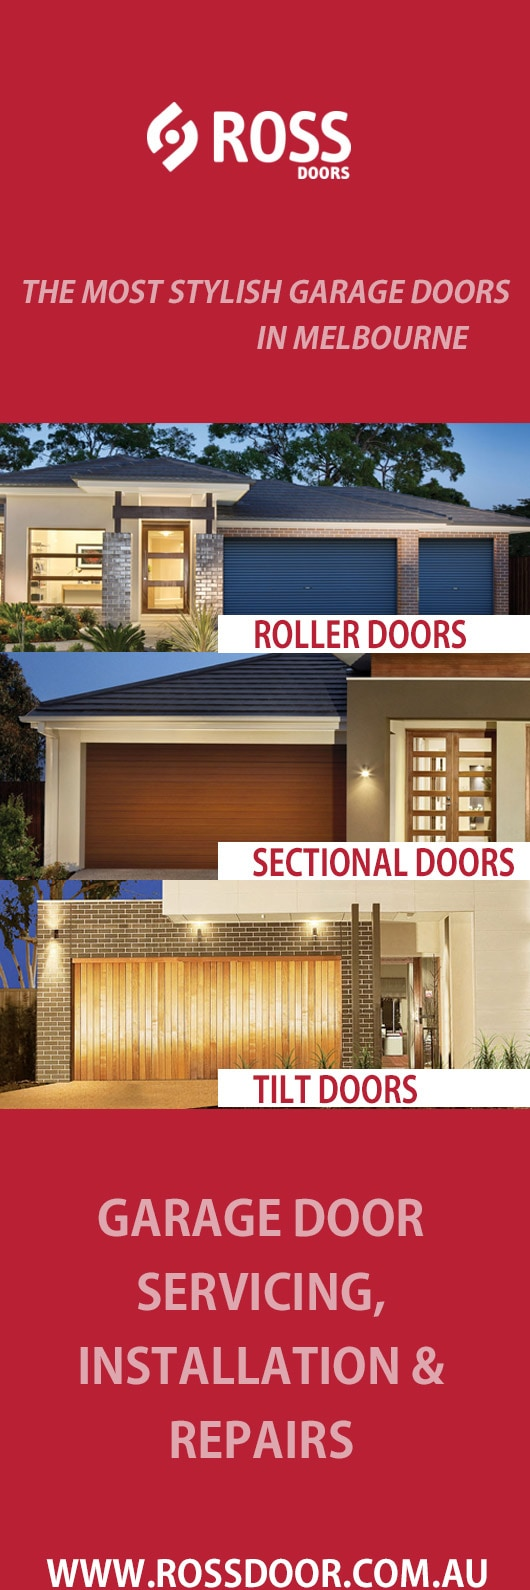 Rossdoor Garage Doors Fittings 111 National Blv Campbellfield